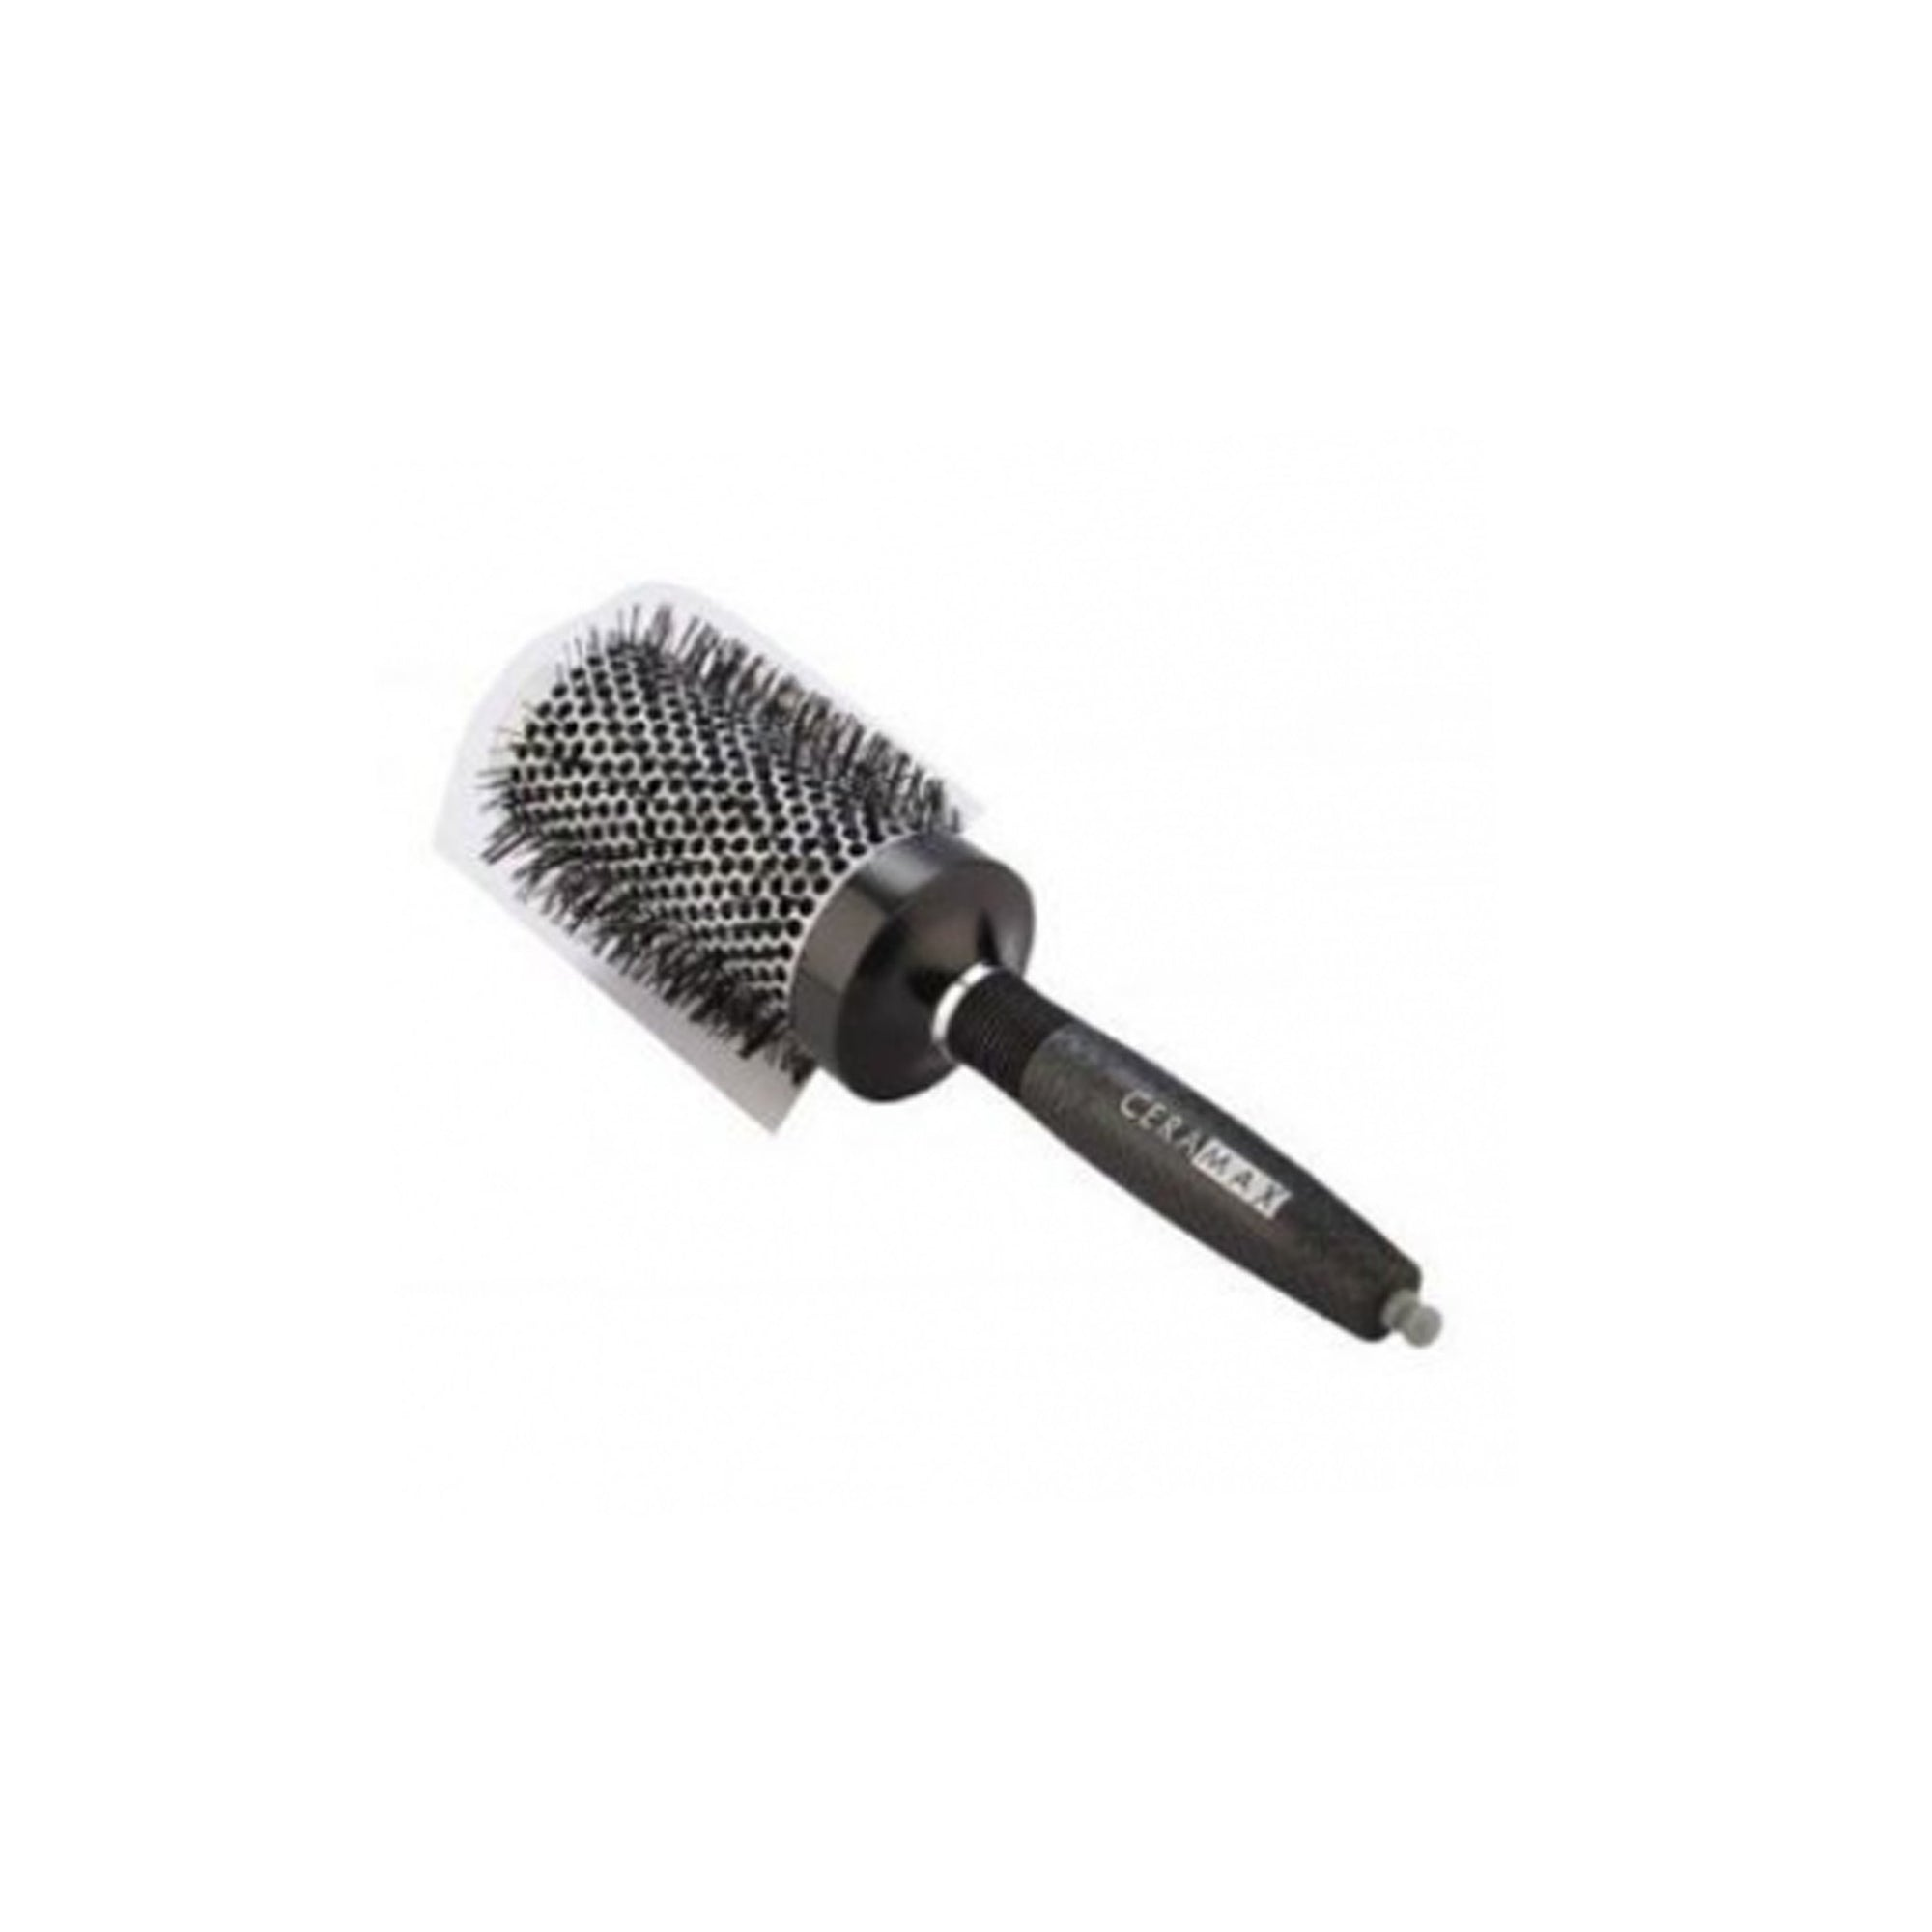 Ceramax Ionic Thermal Round Brush X- Large 53mm